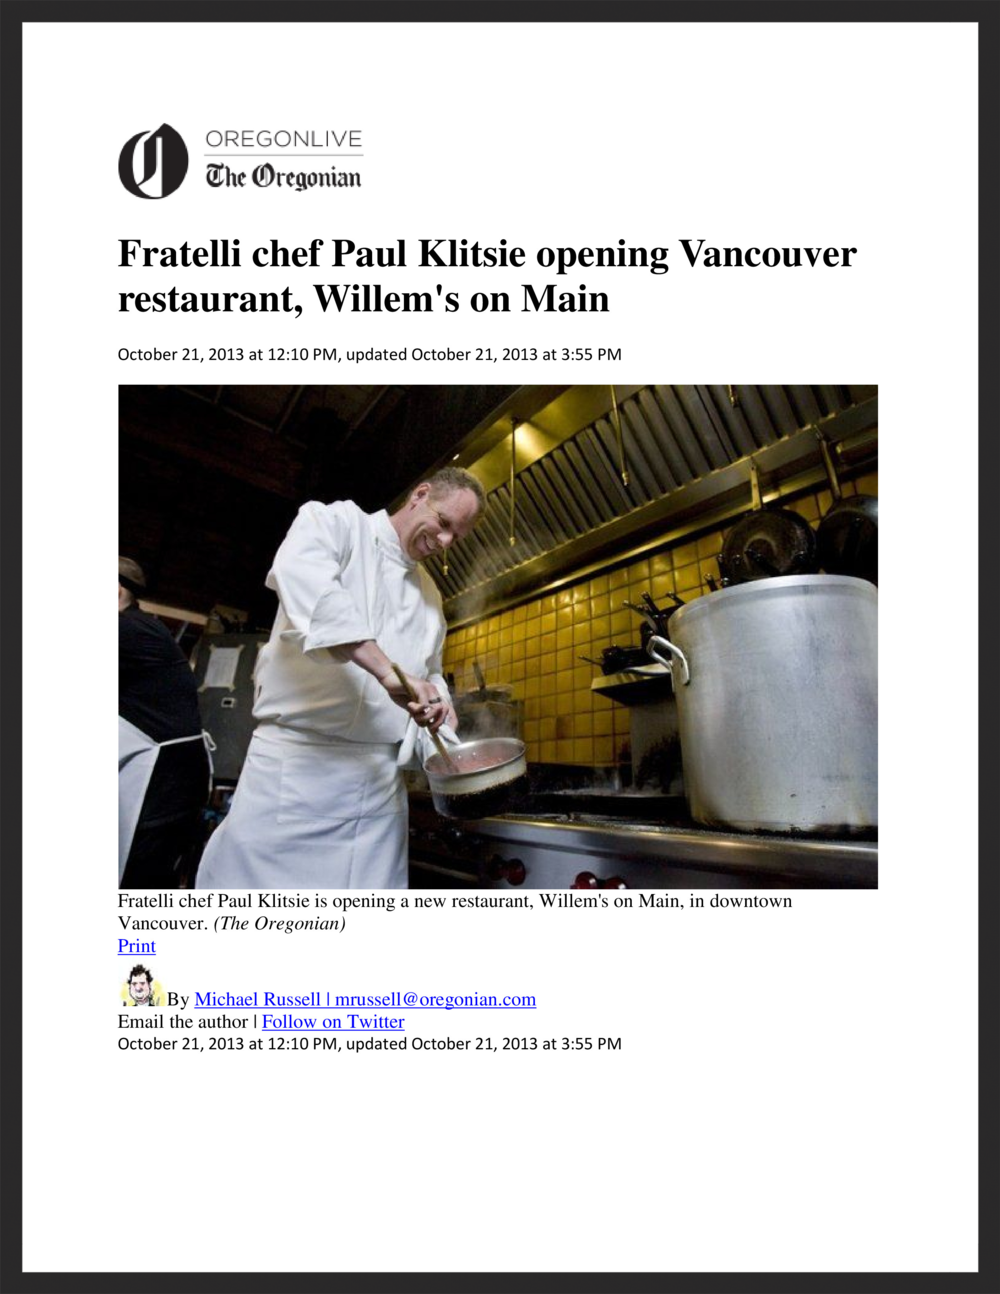 WILLEM'S ON MAIN  The Oregonian  10.21.2013